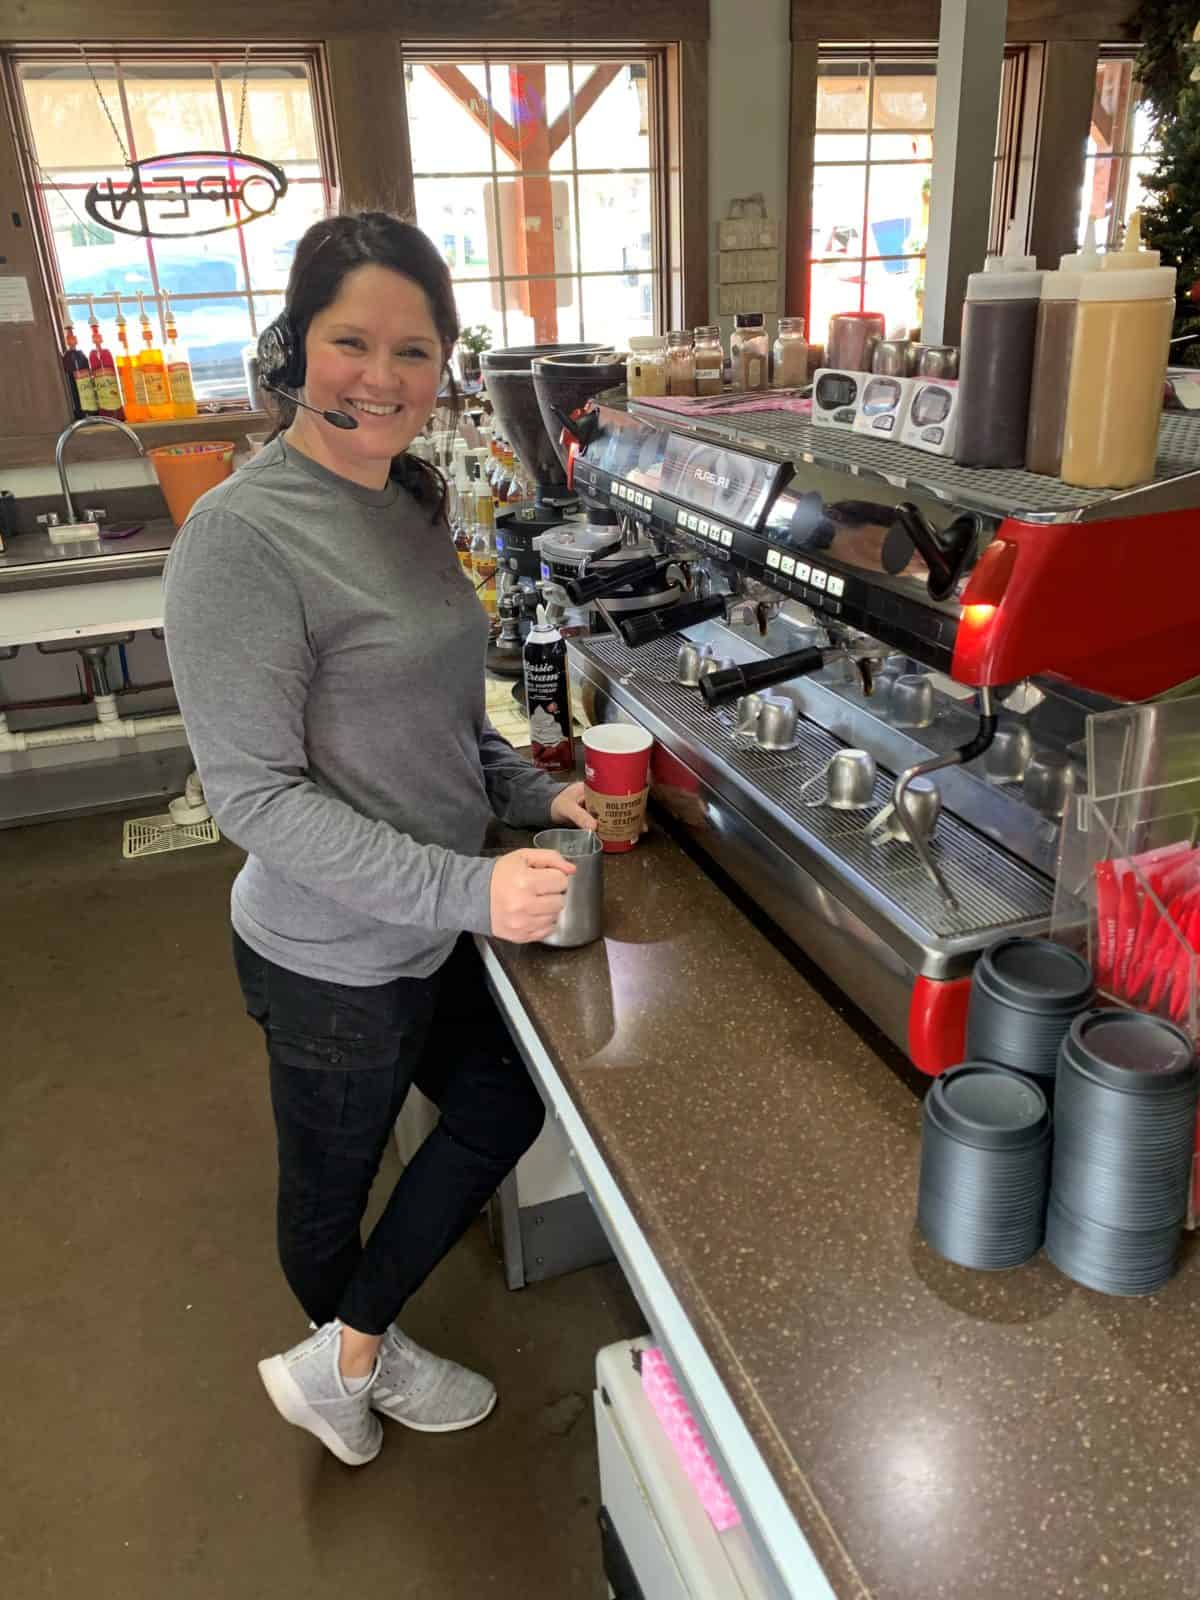 Barista at Holtfield Coffee Station in Hillsboro, Ohio